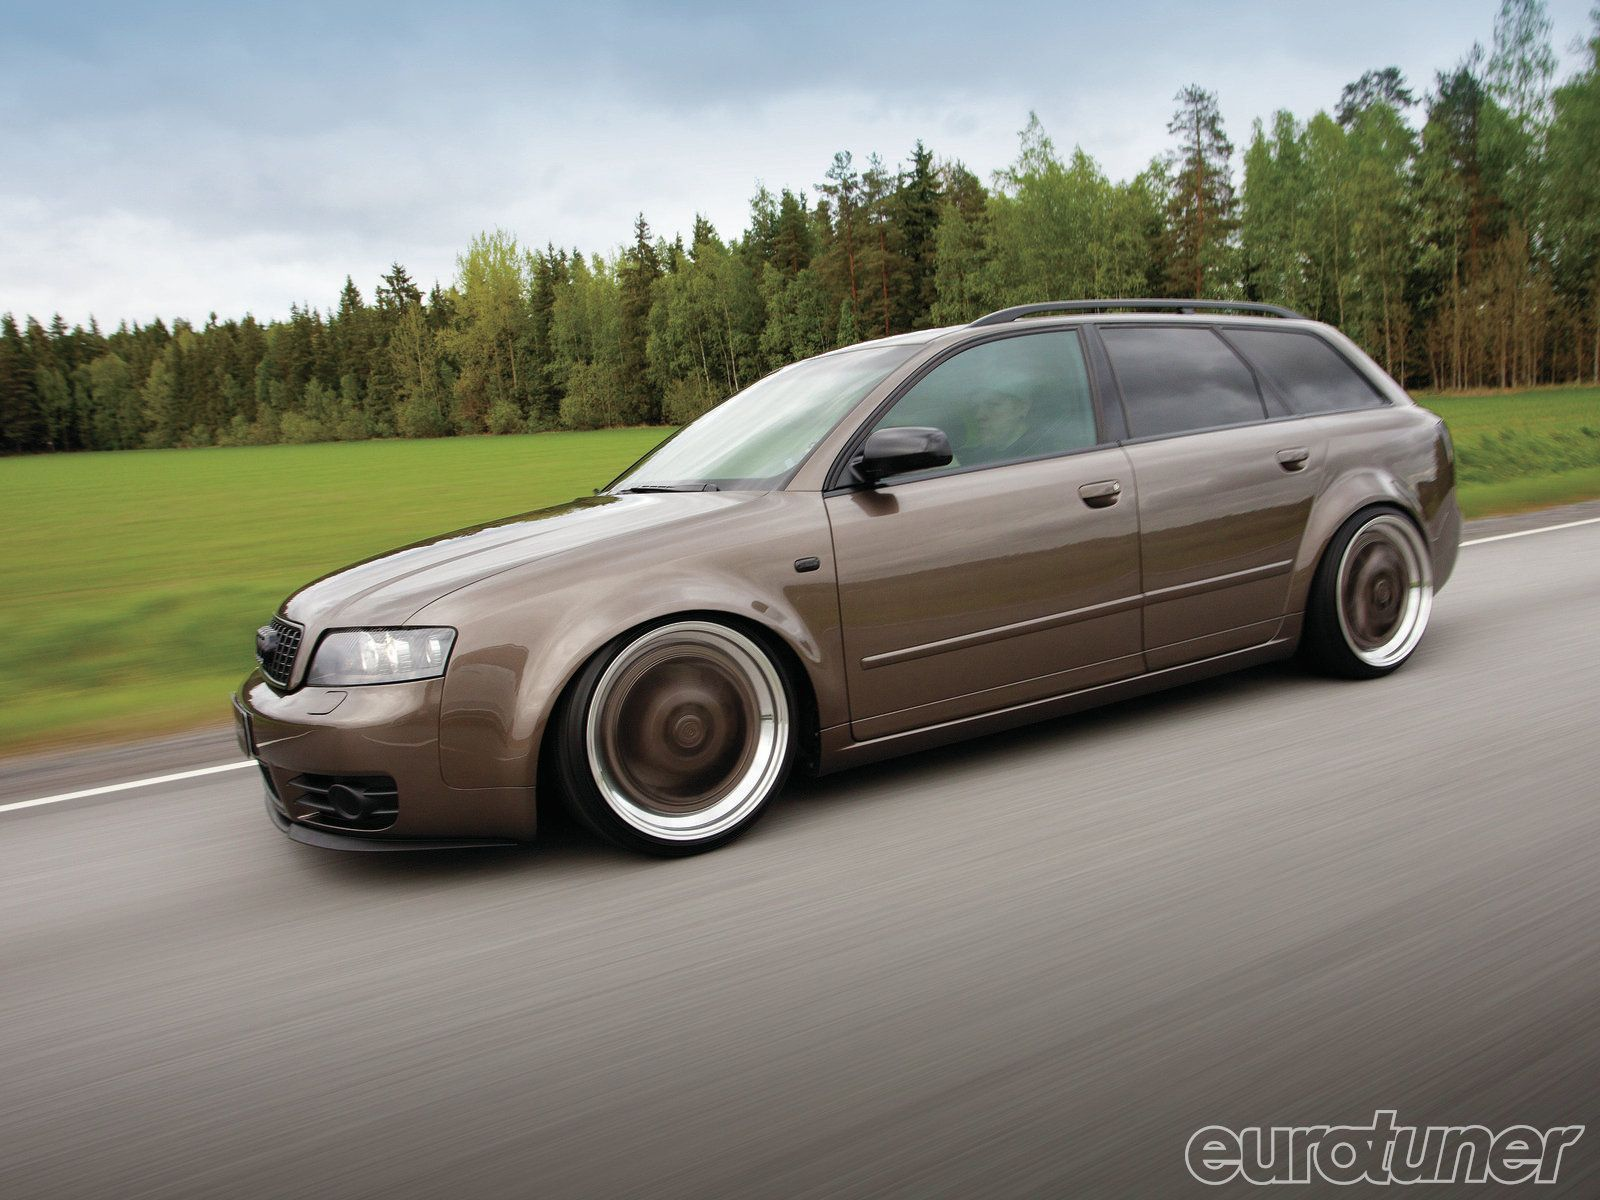 Audi b5 rs slightly lowered vehicles pinterest audi cars and audi a4